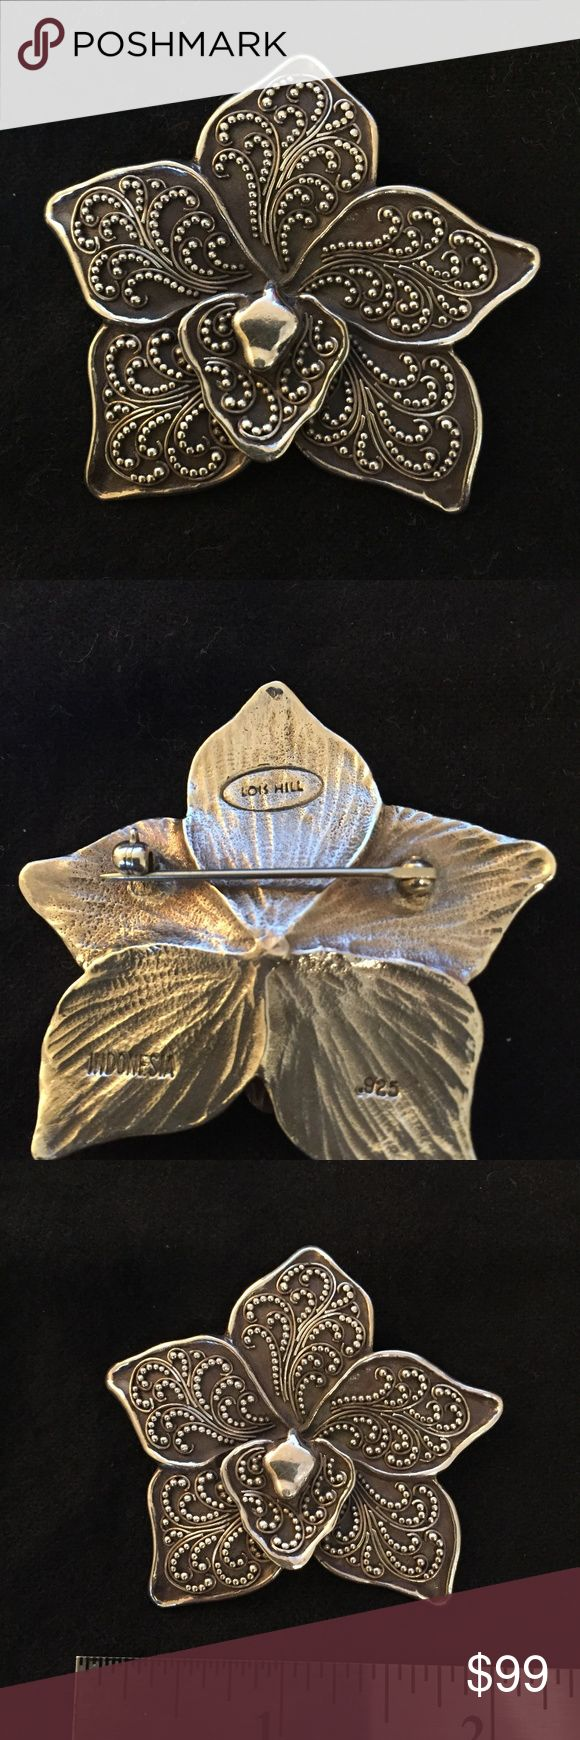 Lois Hill Sterling Silver Orchid Pin This is a beautiful sterling silver pin with an orchid motif. Turn heads when you wear this on a jacket/coat. Lois Hill Jewelry